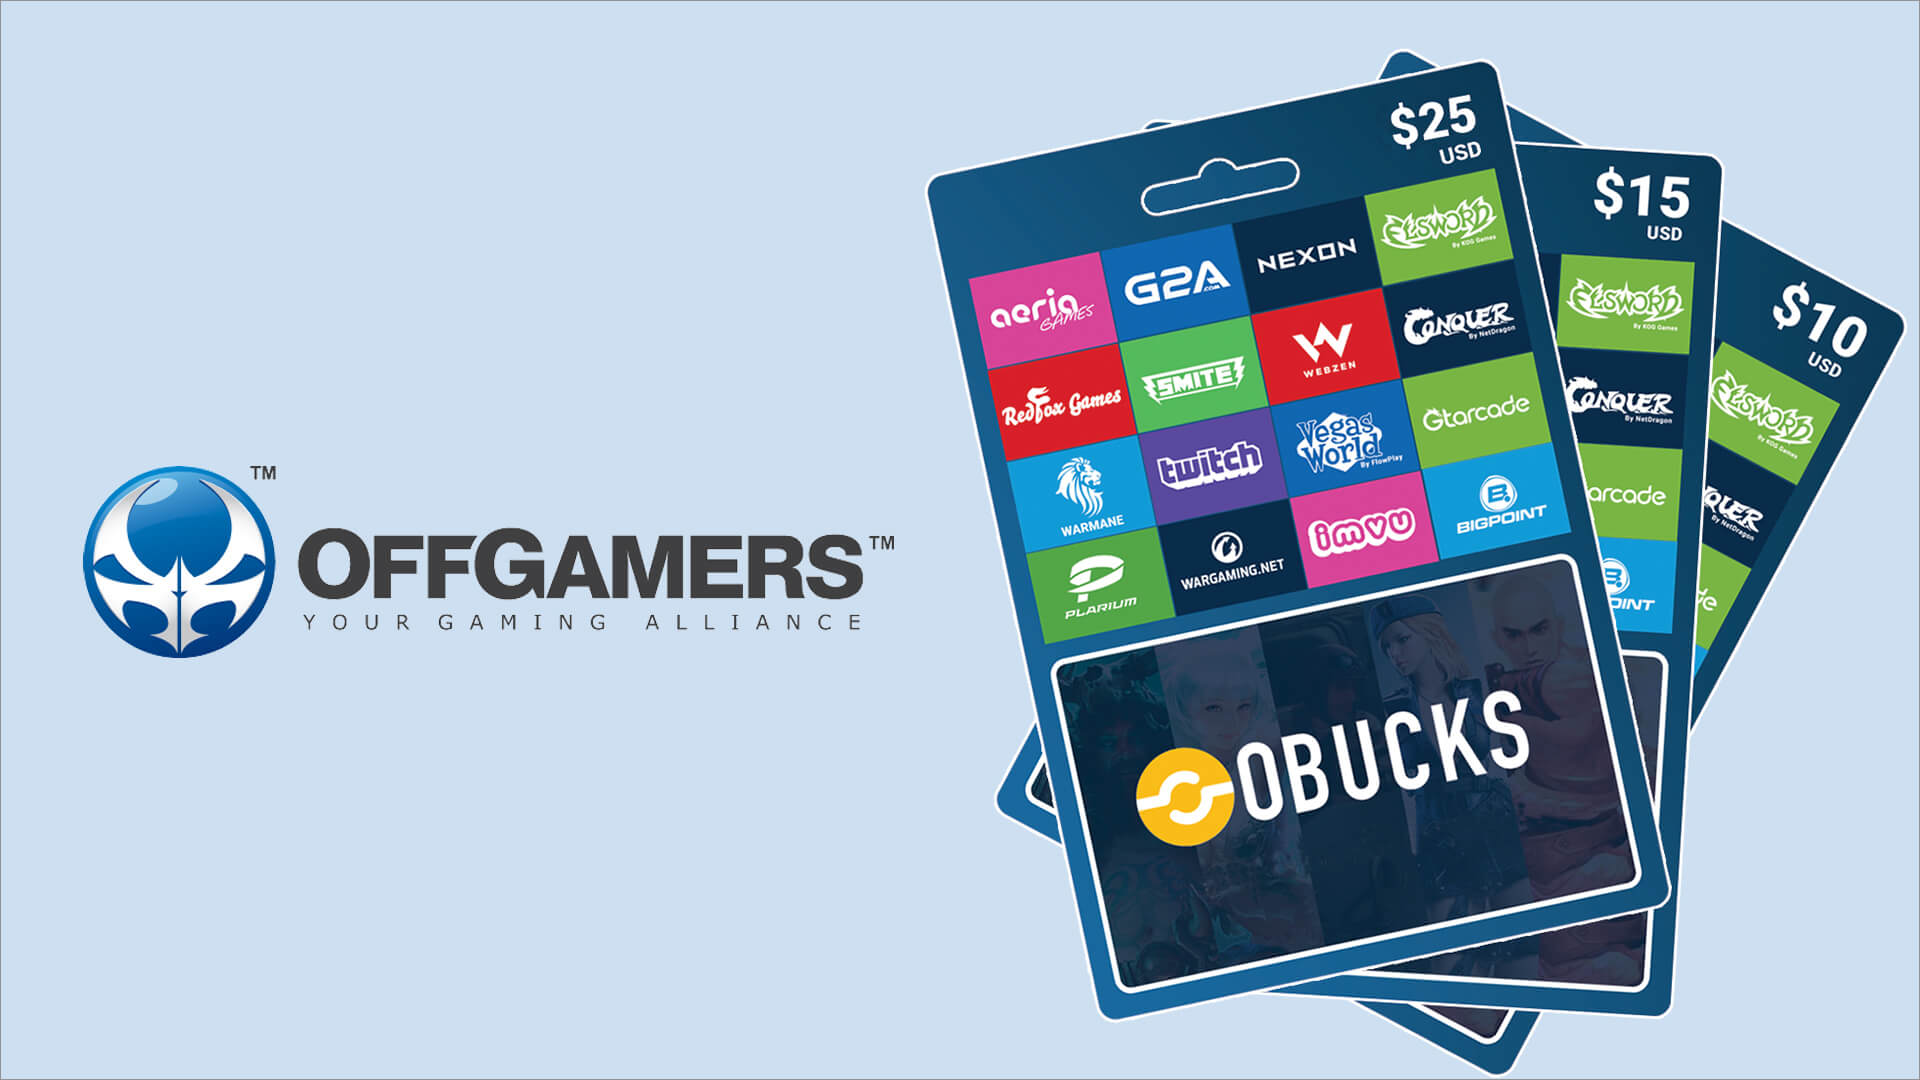 OffGamers and oBucks